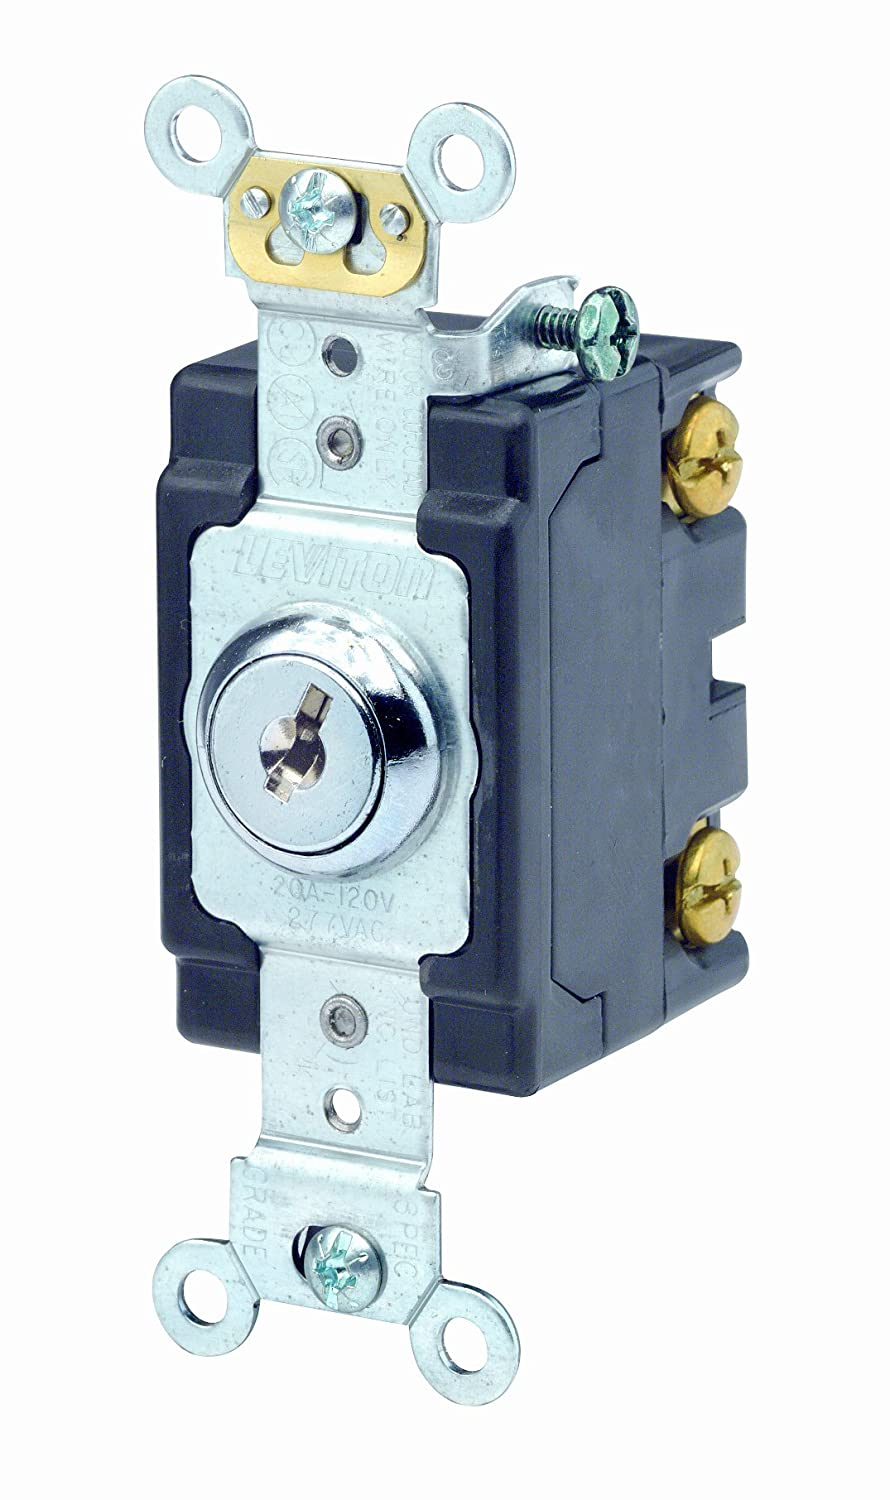 Leviton 1221 2kl 20 Amp 120 277 Volt Key Locking Single Pole Wiring Two Switches Further 3 Way Toggle Ac Quiet Switch Extra Heavy Duty Spec Grade Self Grounding Chrome Home